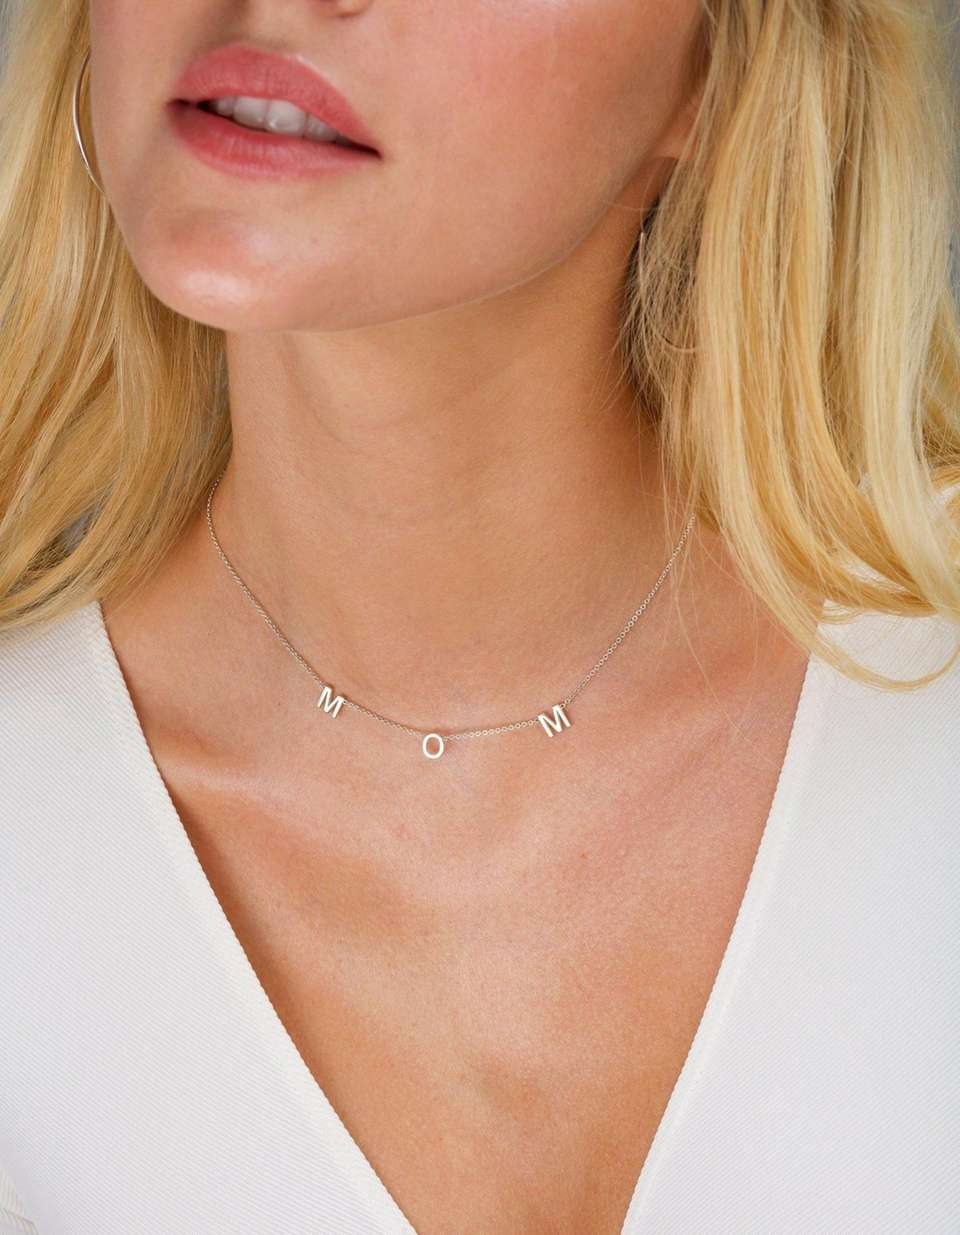 This statement necklace can say Mom, Mama or